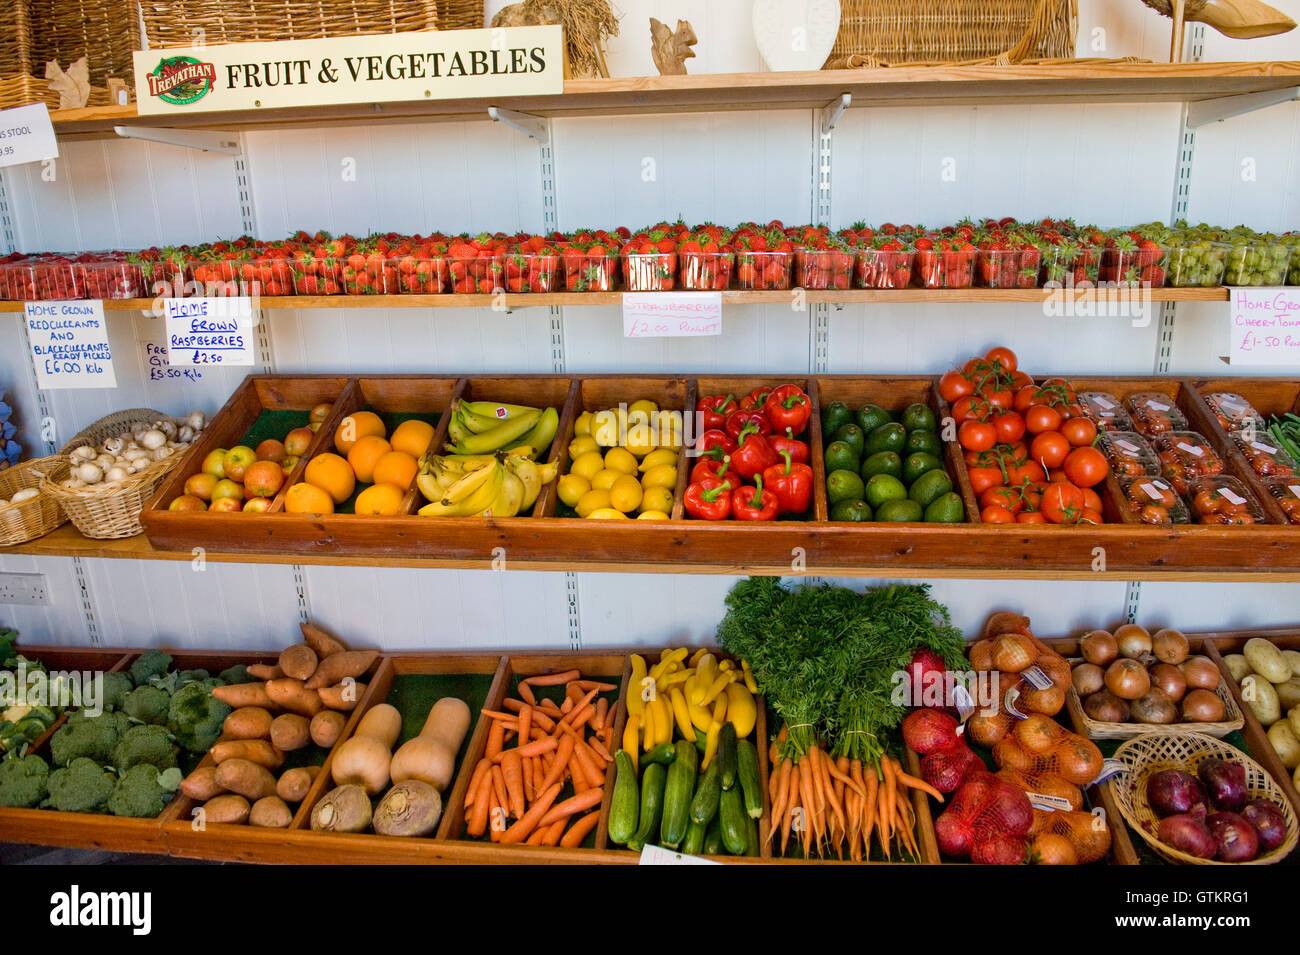 fruit and vegetables in a farm shop - Stock Image